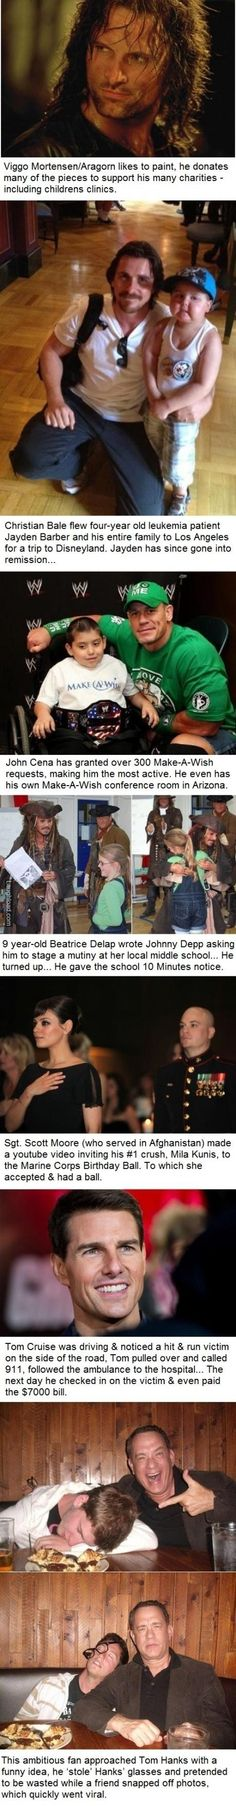 Celebrities can be awesome. (Not one can top Benedict Cumeberbatch. :D)